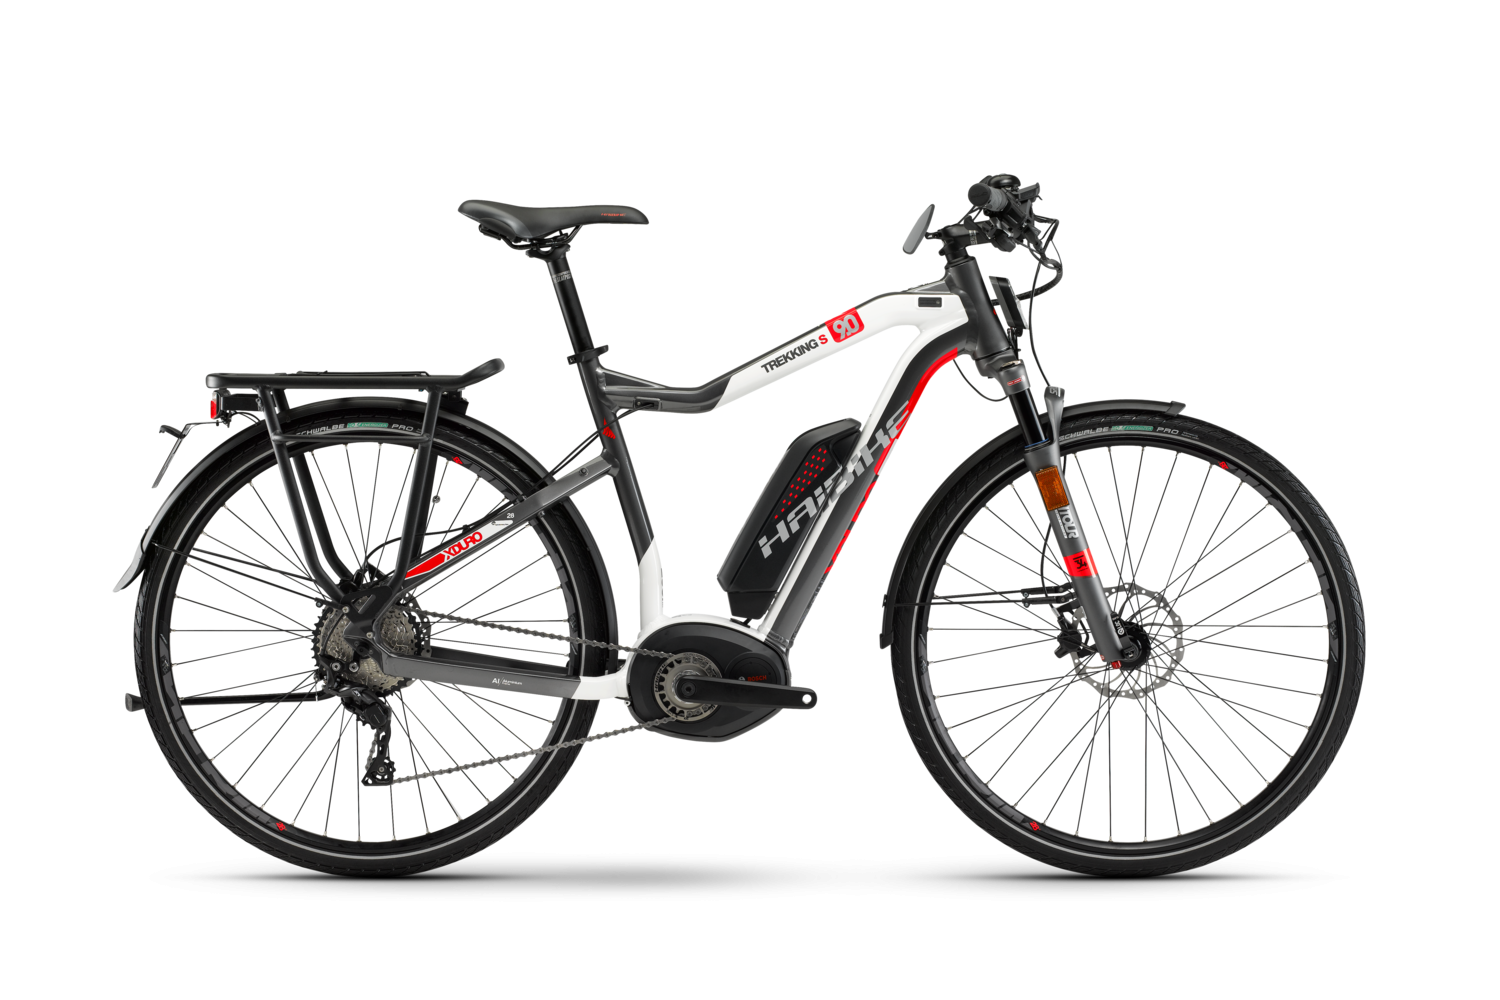 2018 XDURO Trekking S 9.0 E-Bike (HIGH-STEP)